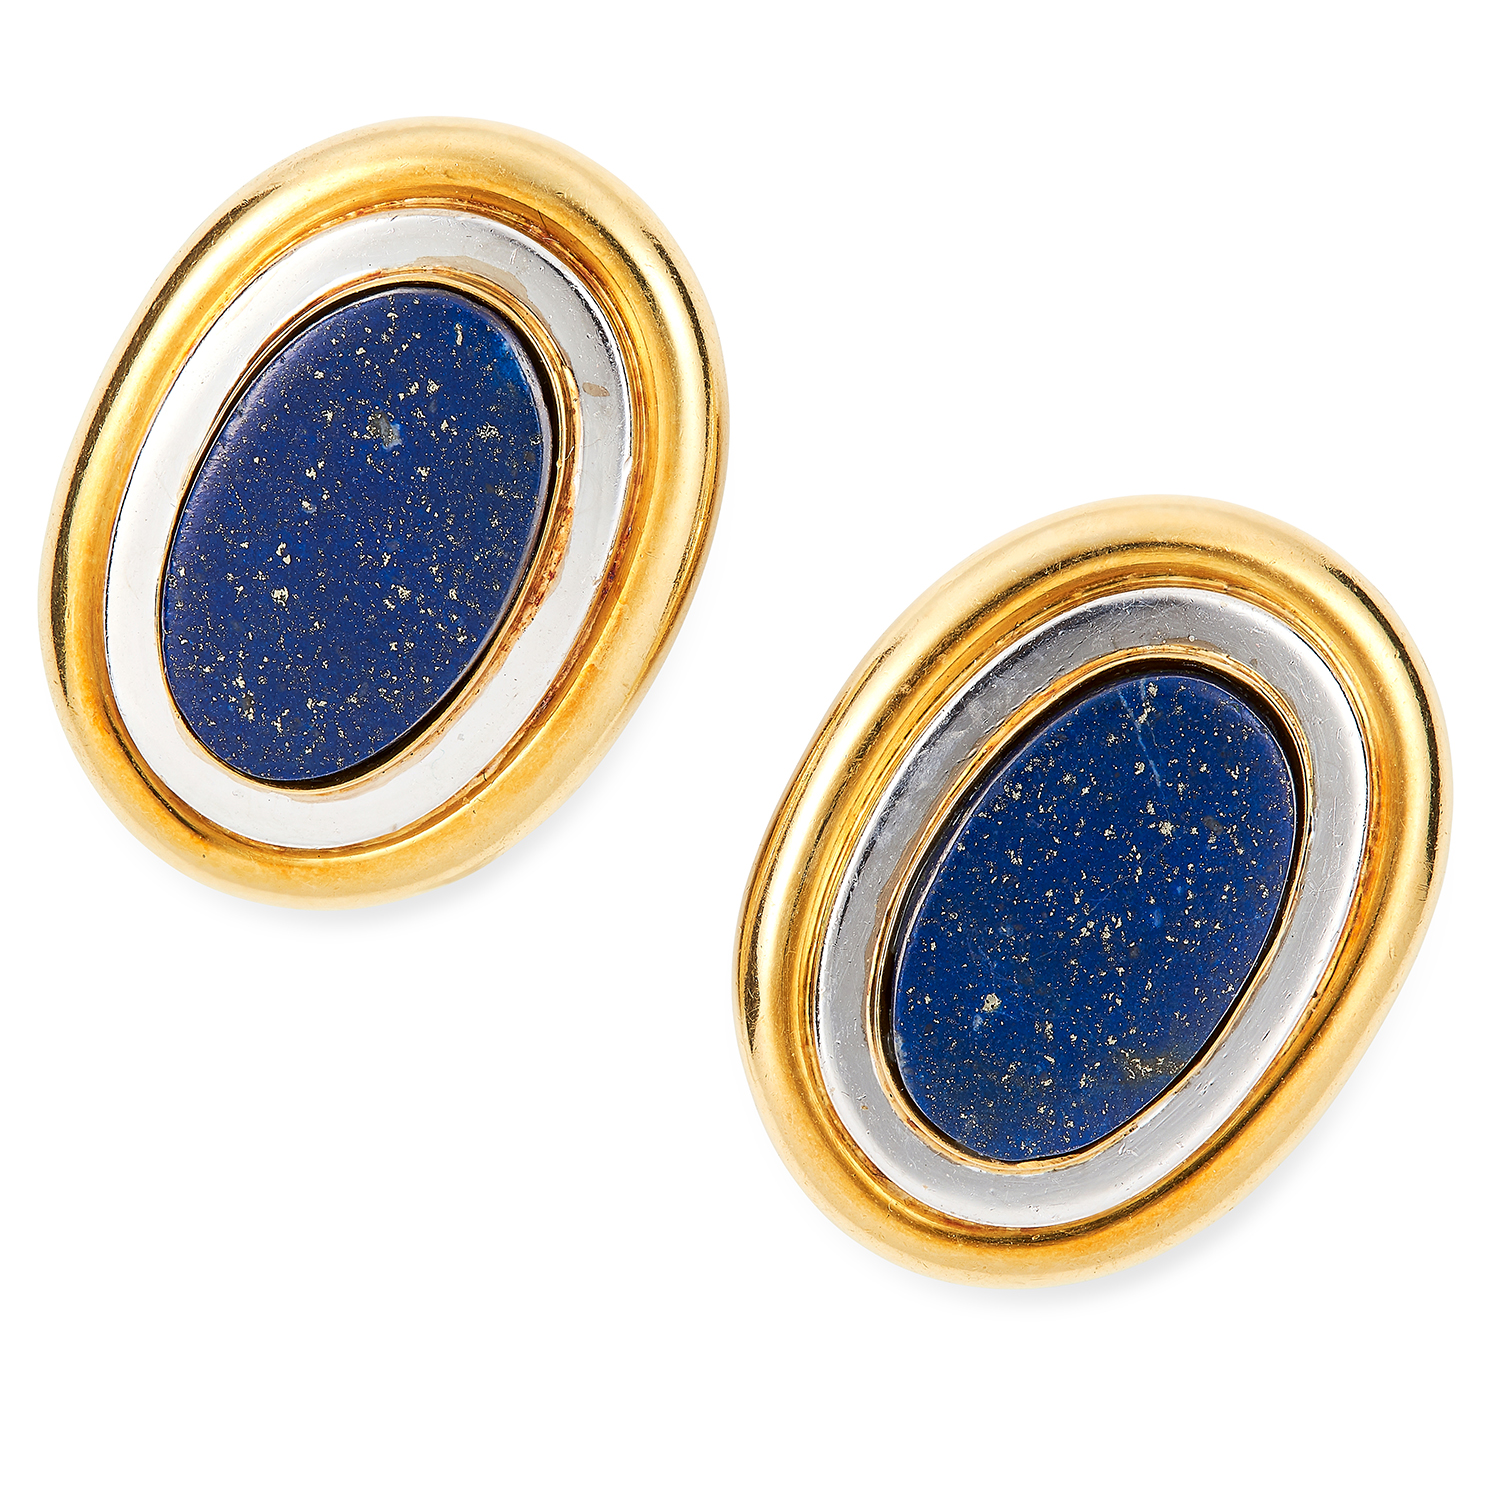 Los 22 - VINTAGE LAPIS LAZULI EARRINGS, PALOMA PICASSO FOR TIFFANY AND CO each set with a polished piece of